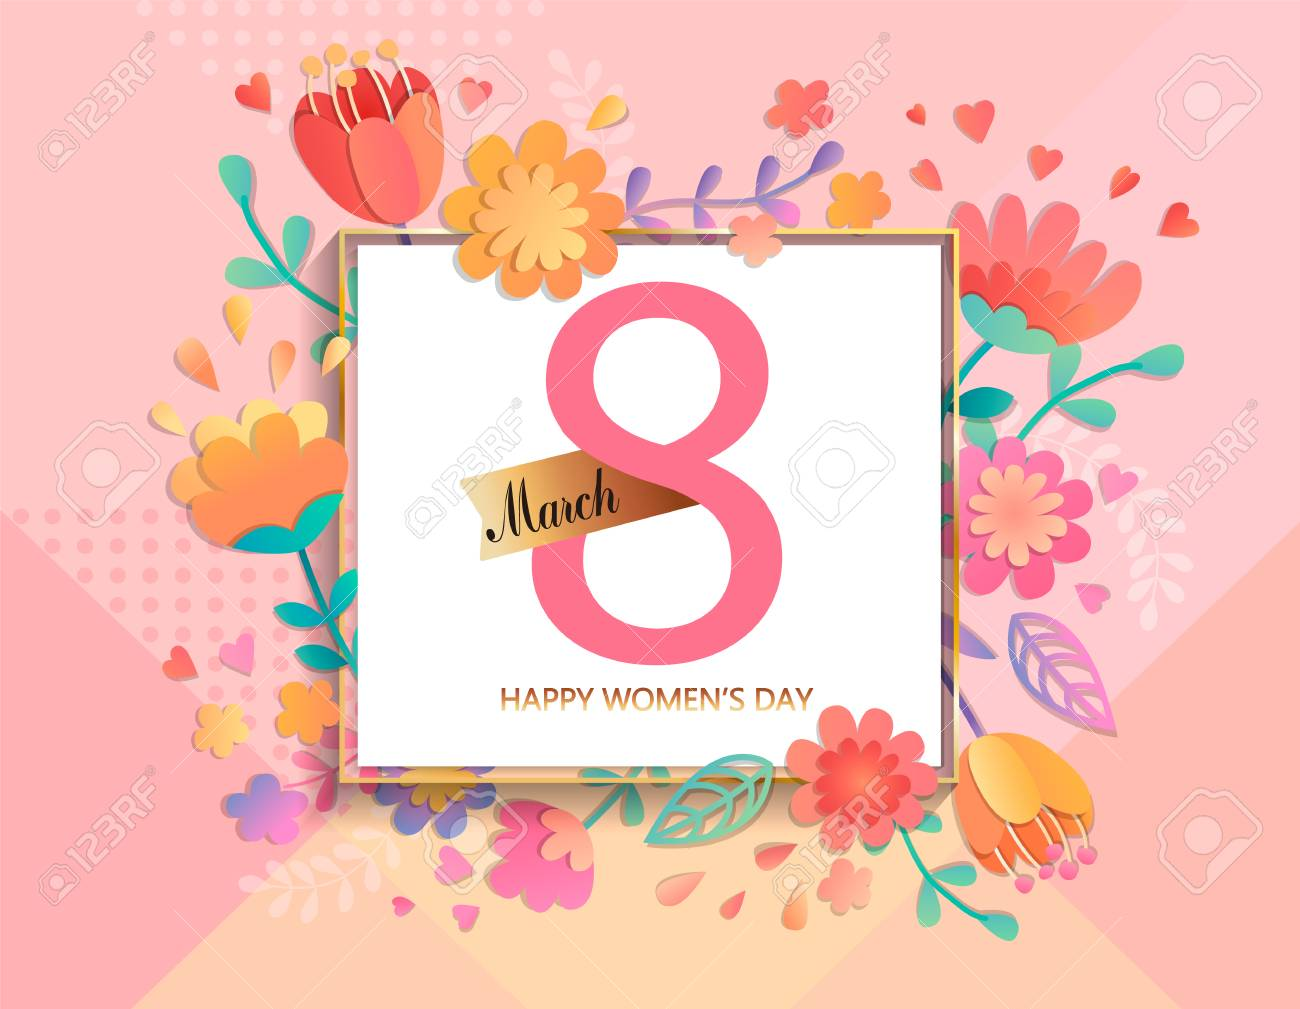 Card for happy women's day in square frame on geometric background pastel colors with beautiful flowers. Vector illustration template, banner, flyer, invitation, poster. - 94542515